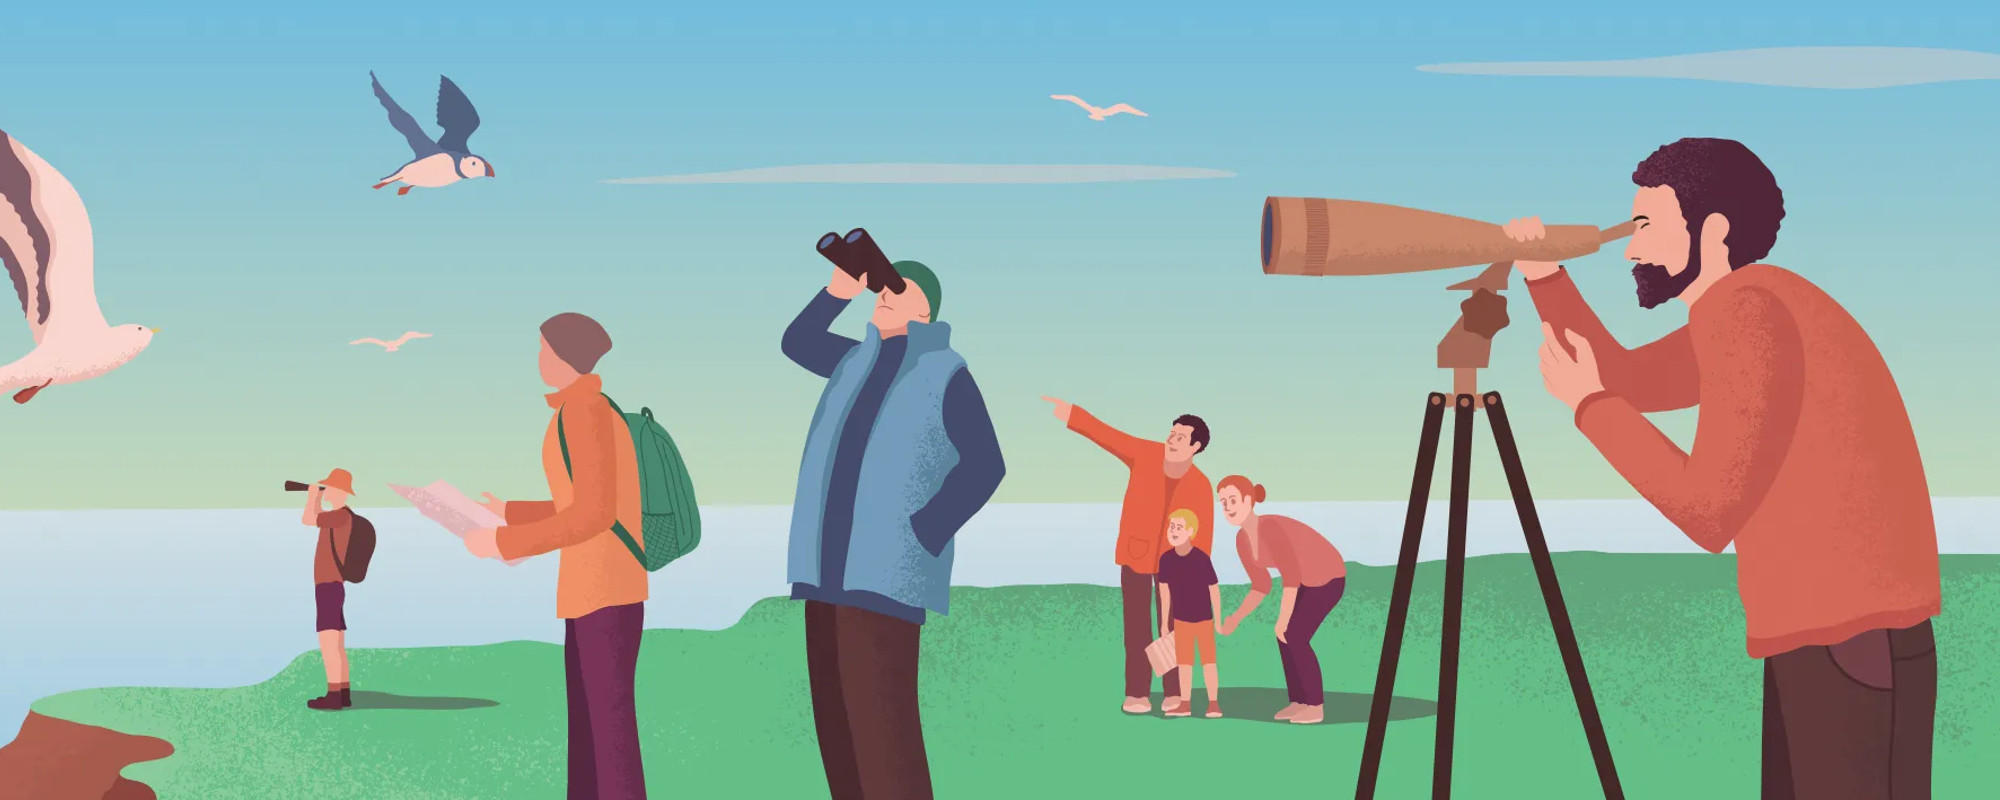 Social aspects of Citizen Science